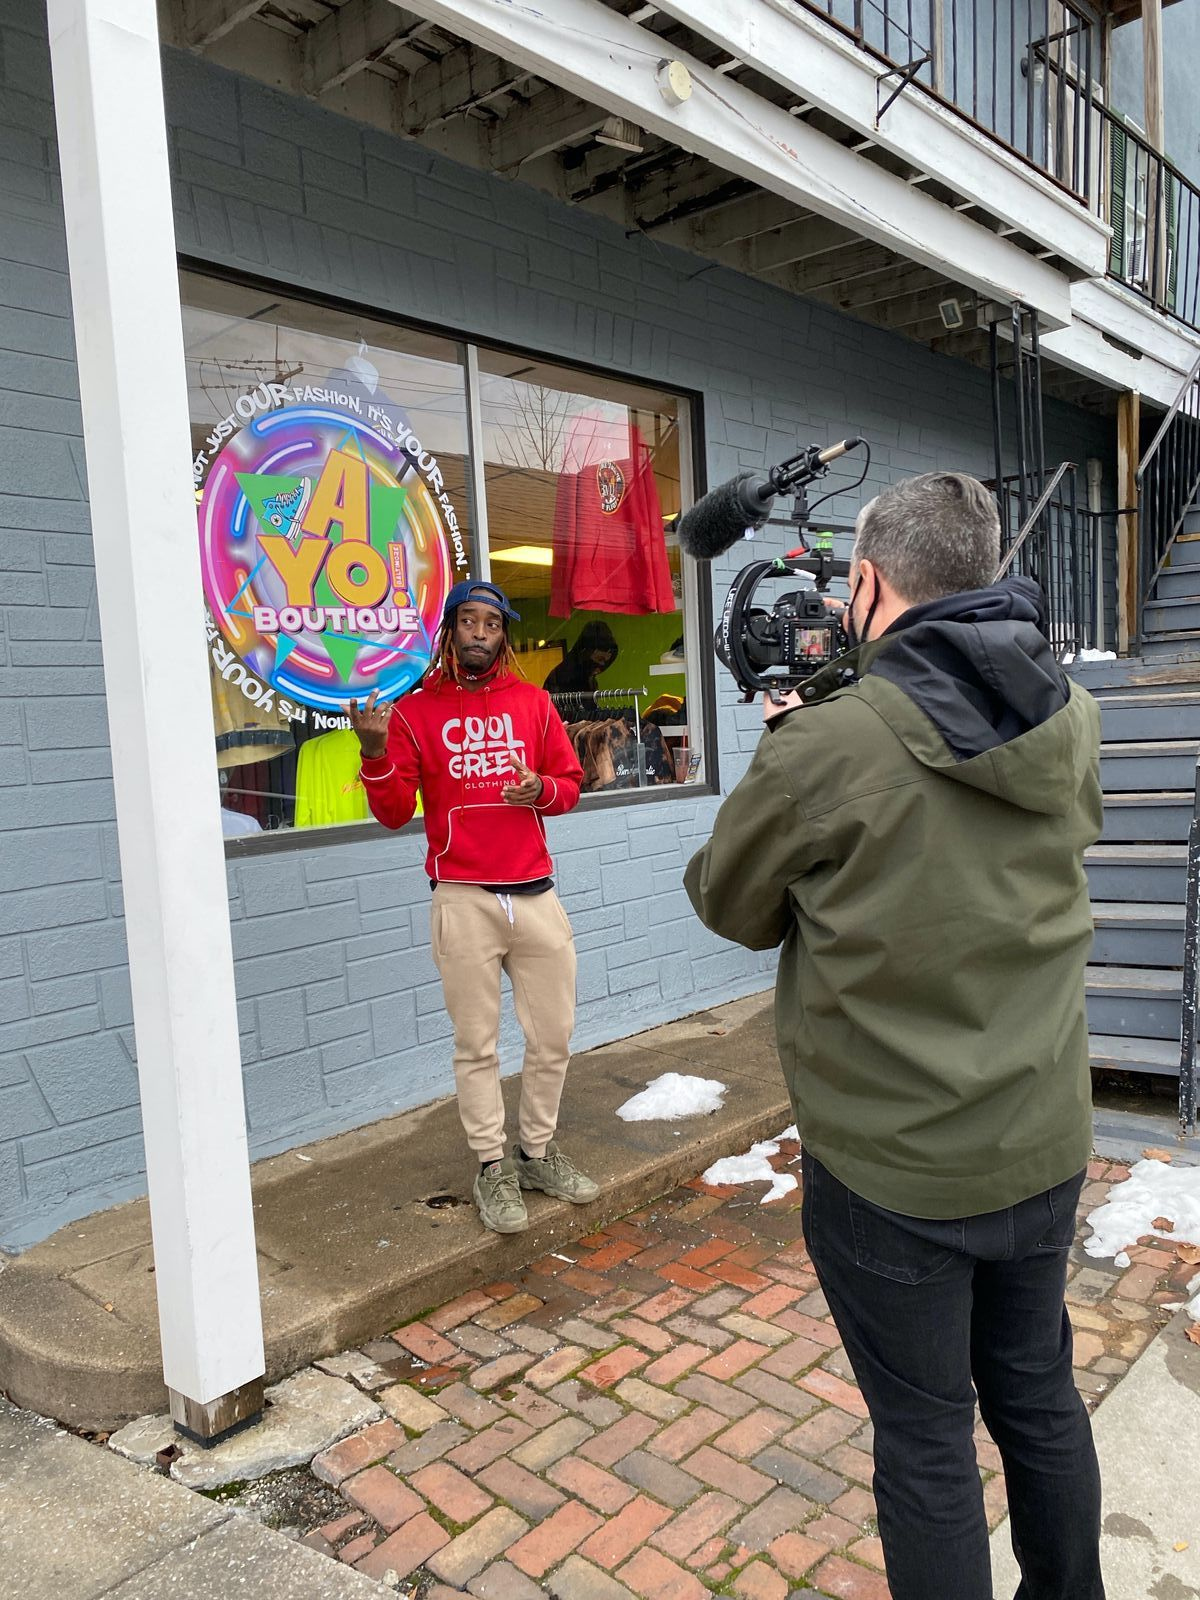 AYO Boutique Video - February 2021 Hey Westminster Grant Recipient